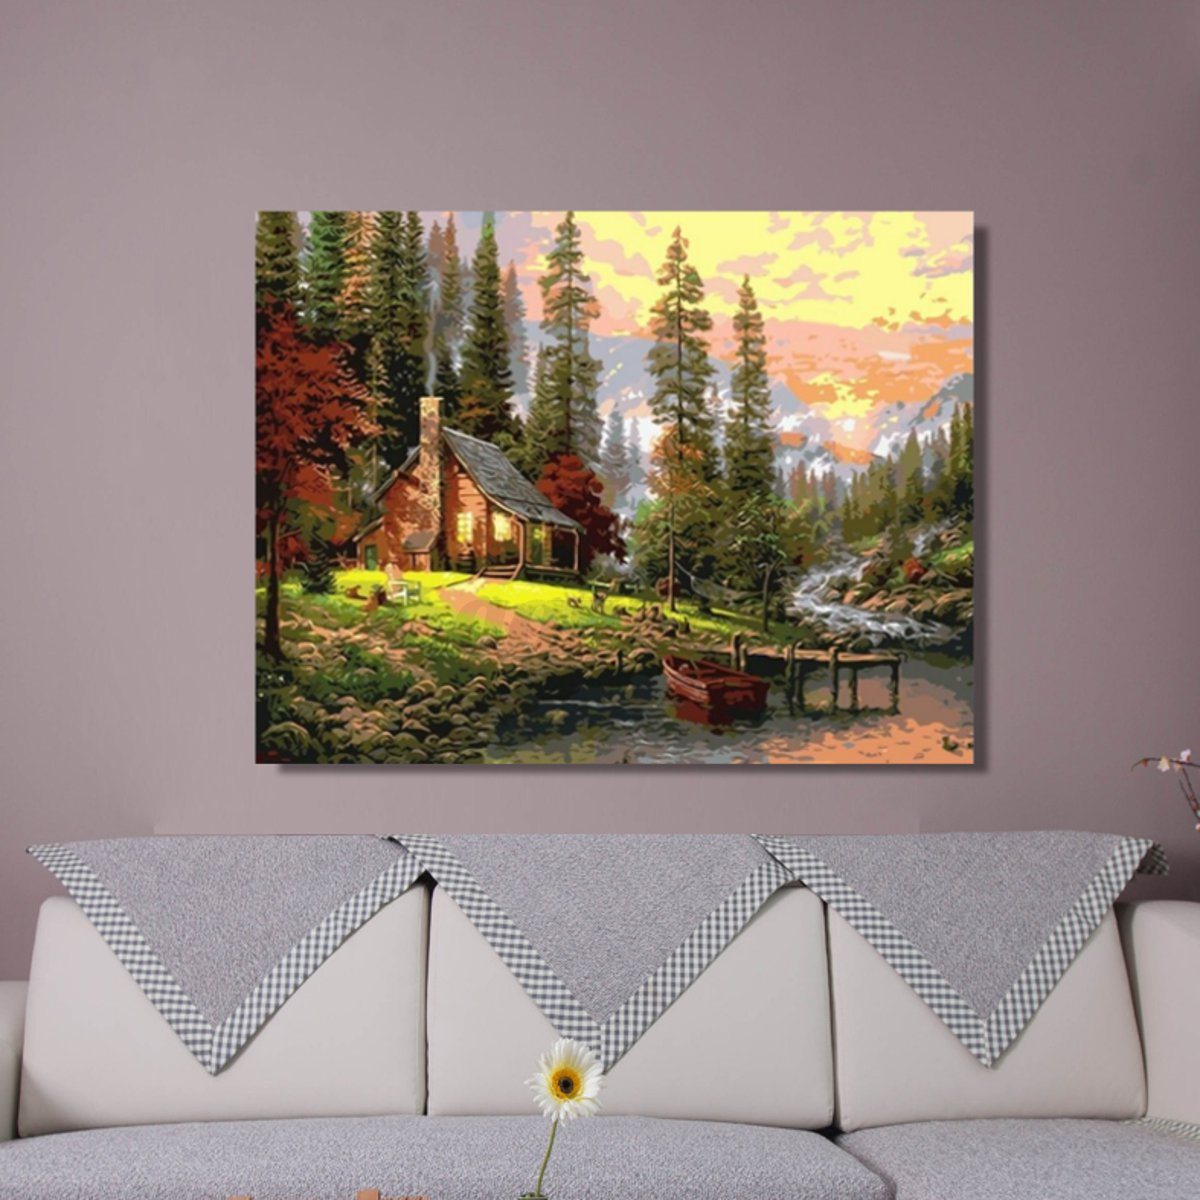 20x16 39 39 diy digital oil painting kit paint by numbers for Art painting for home decoration